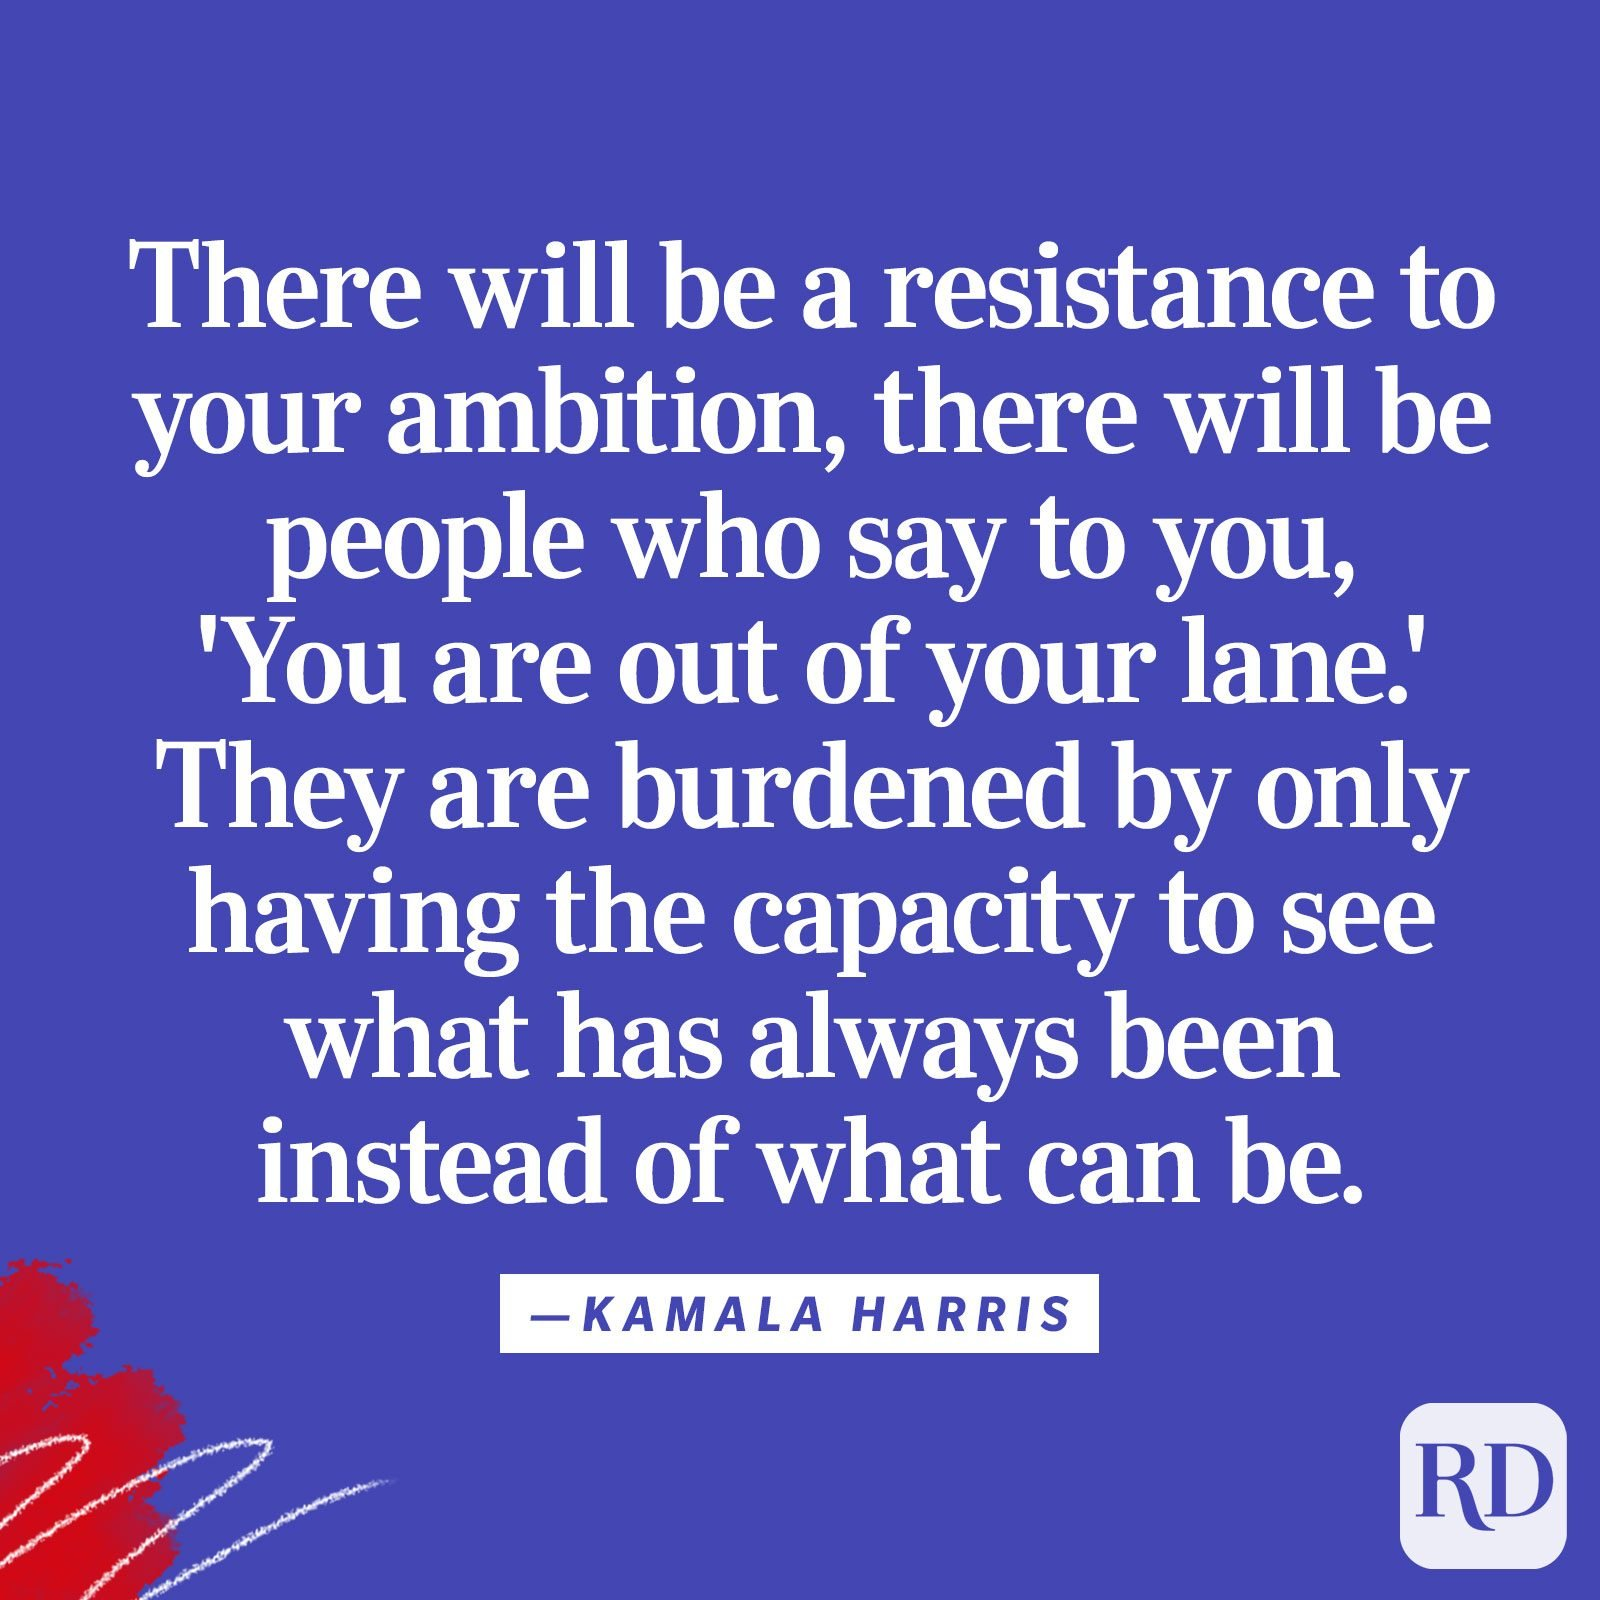 """There will be a resistance to your ambition, there will be people who say to you, 'You are out of your lane.' They are burdened by only having the capacity to see what has always been instead of what can be."""